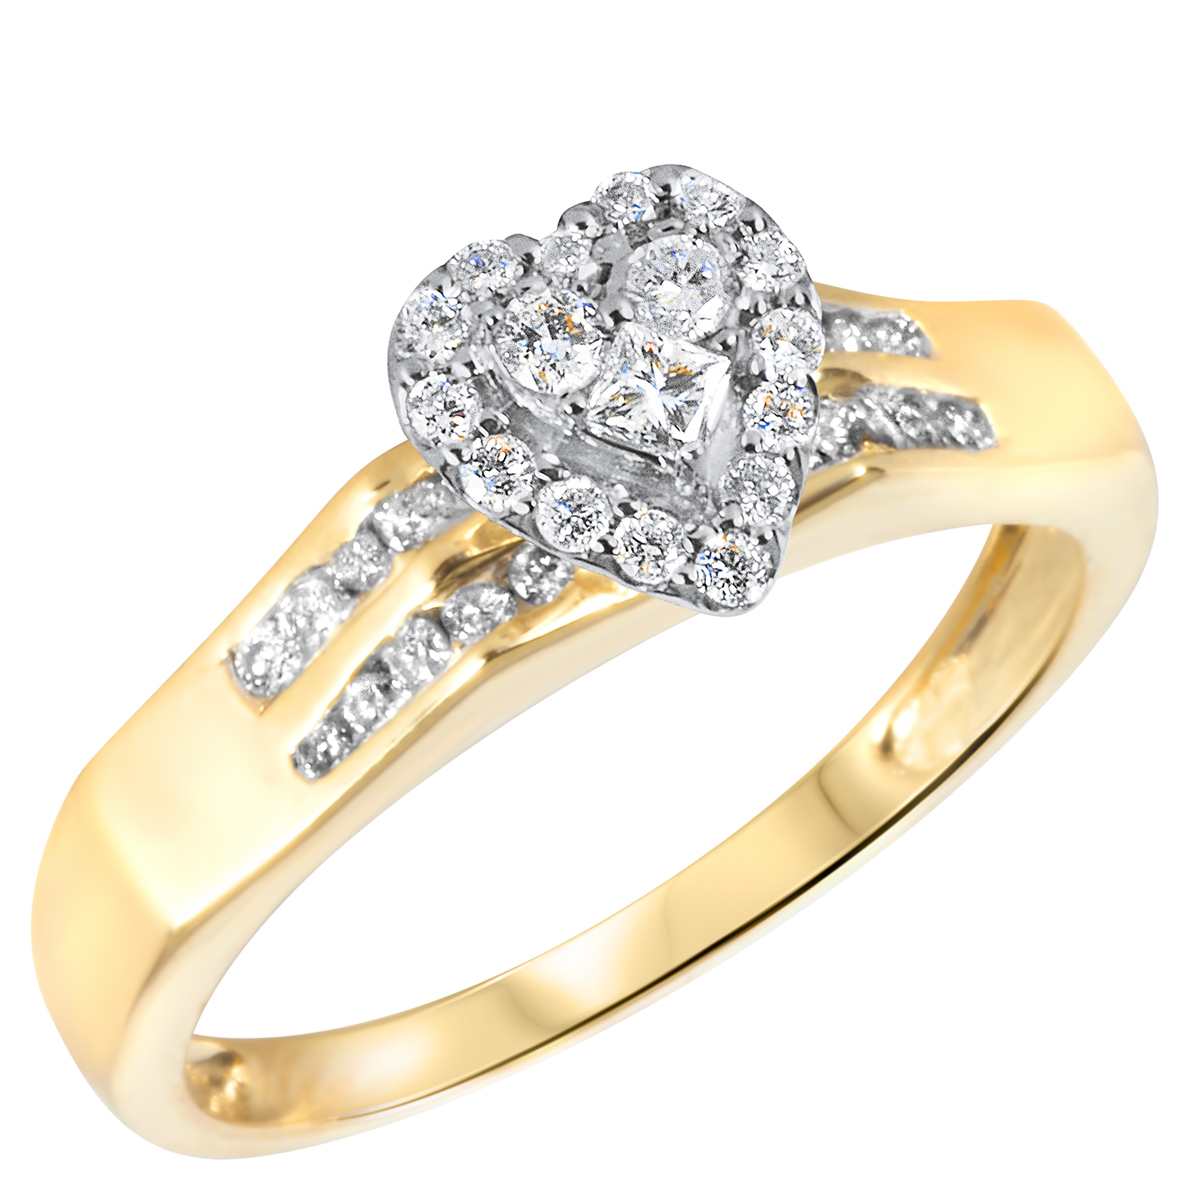 1/2 CT. T.W. Diamond Ladies Engagement Ring 10K Yellow Gold